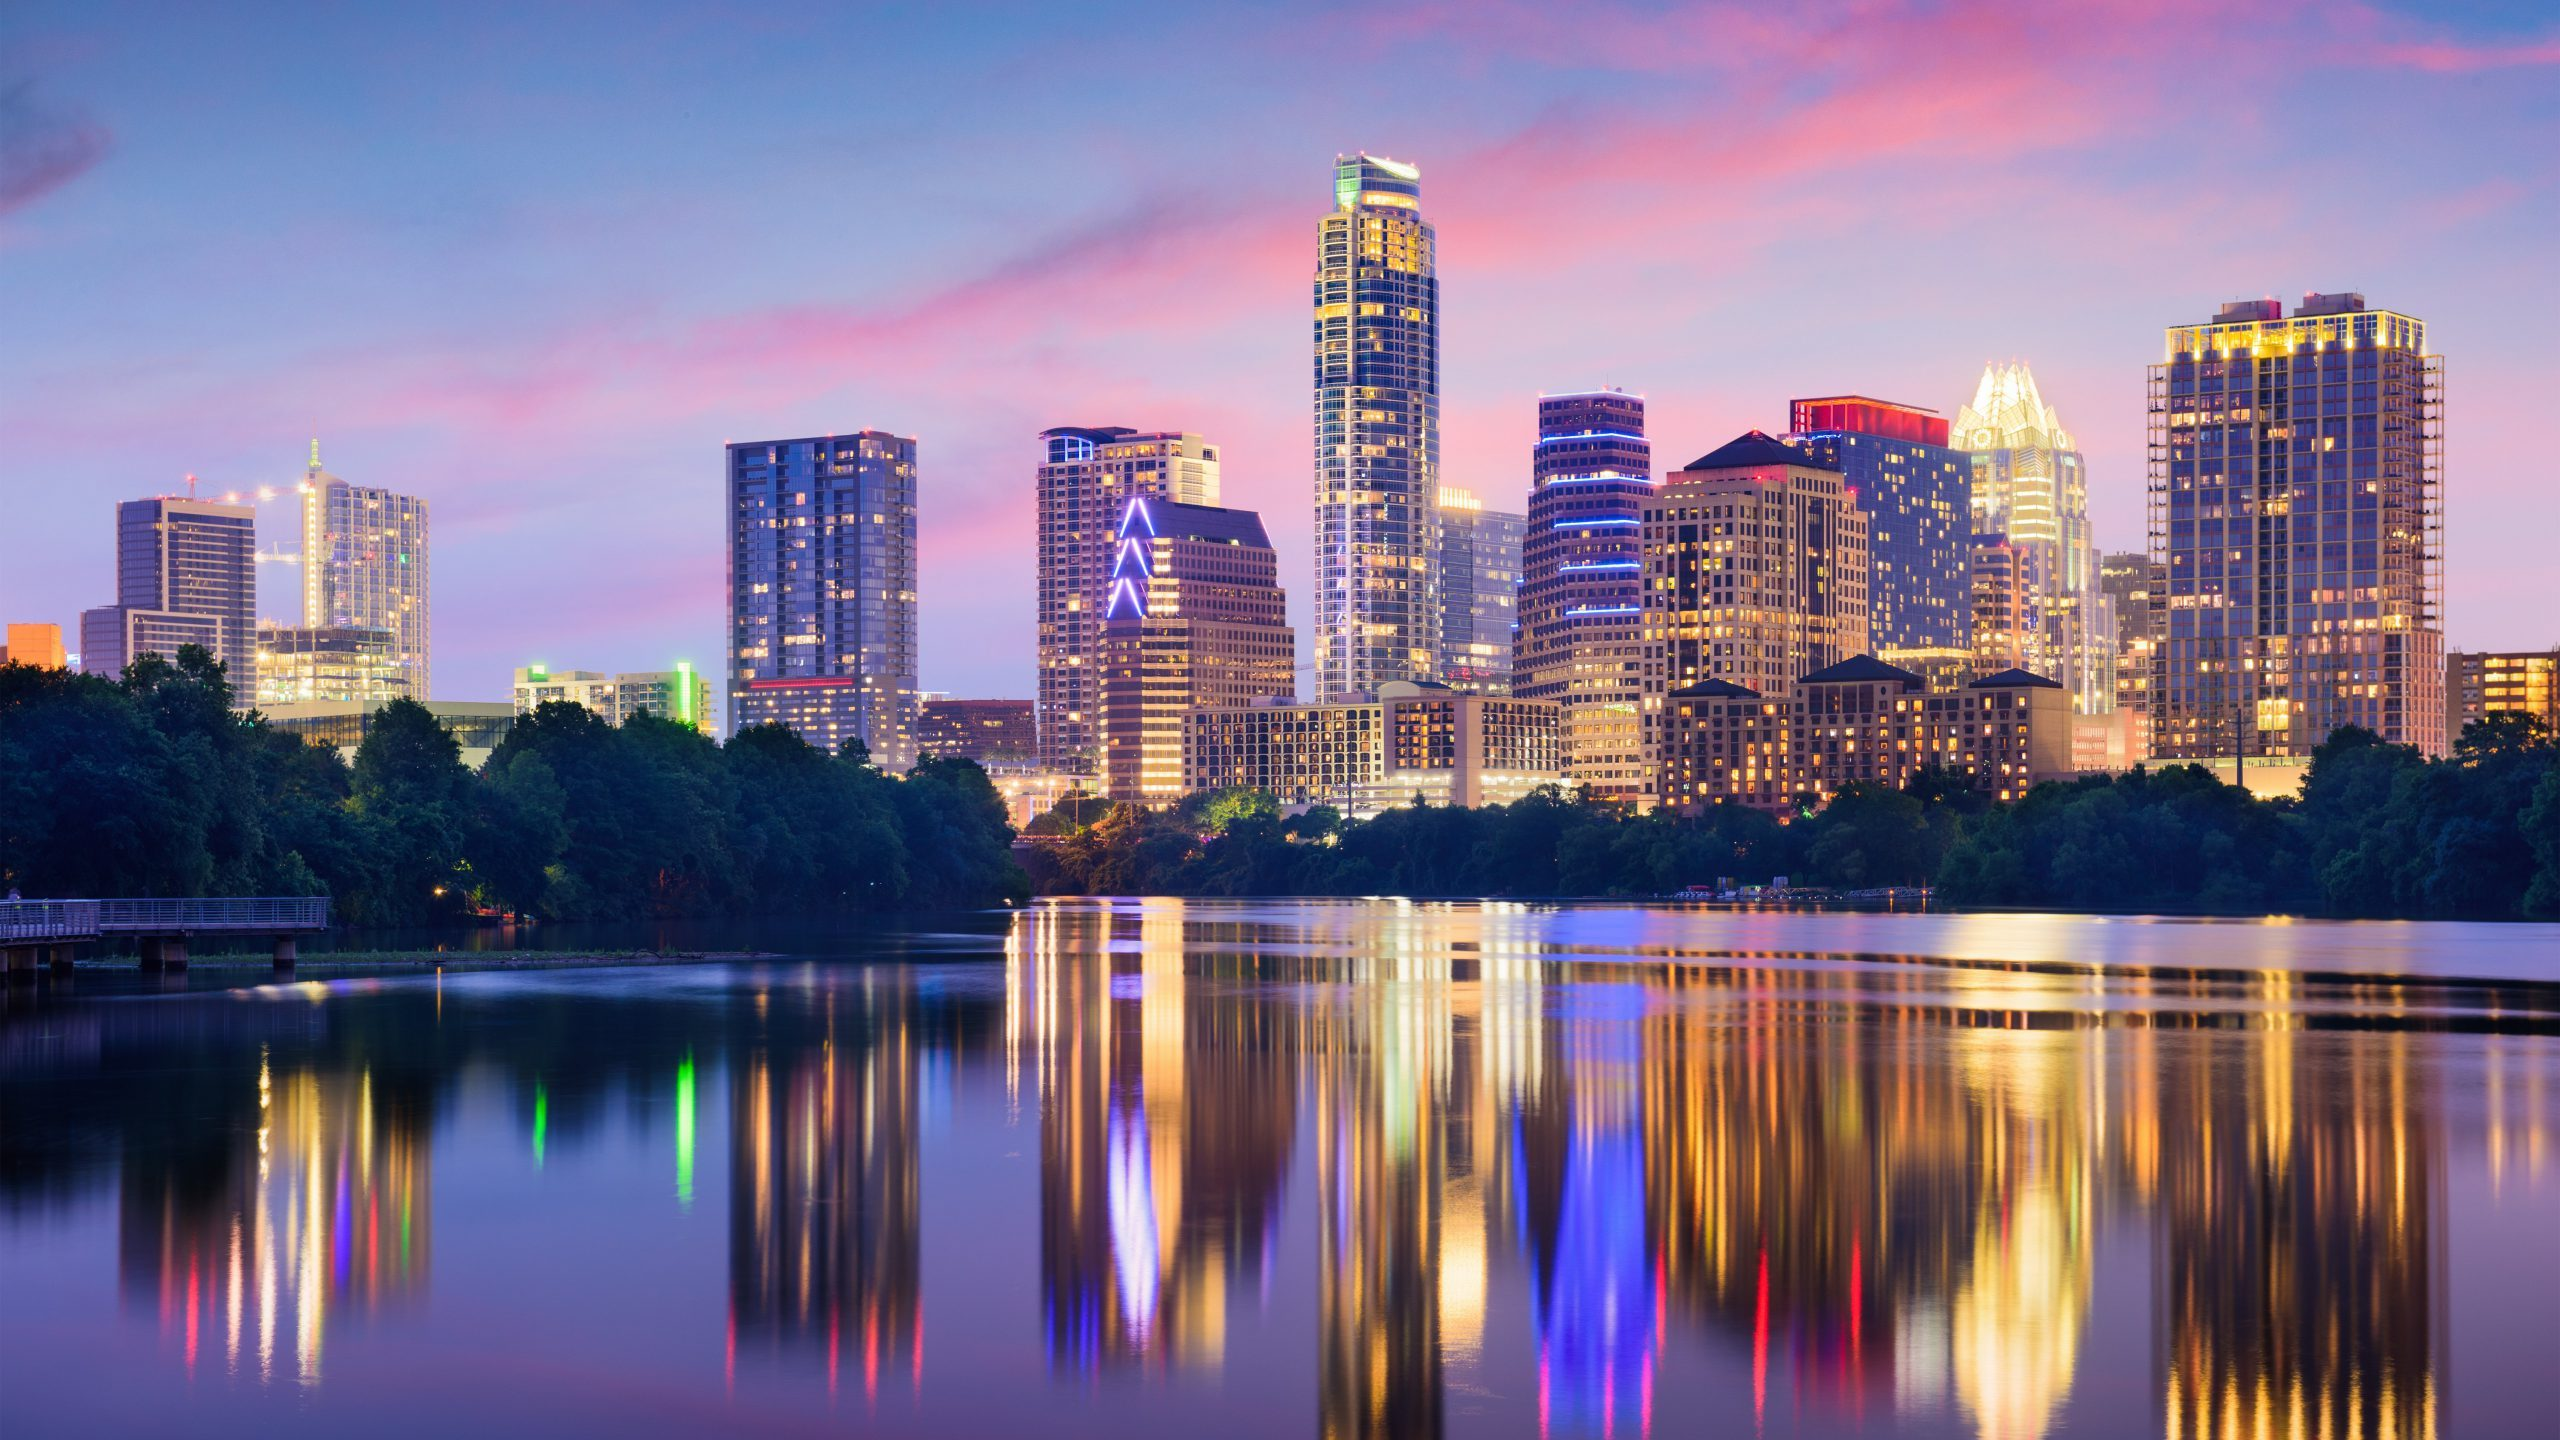 Disruption, Technology, and Personalization in Corporate Learning: What to Expect at TCEA 2020